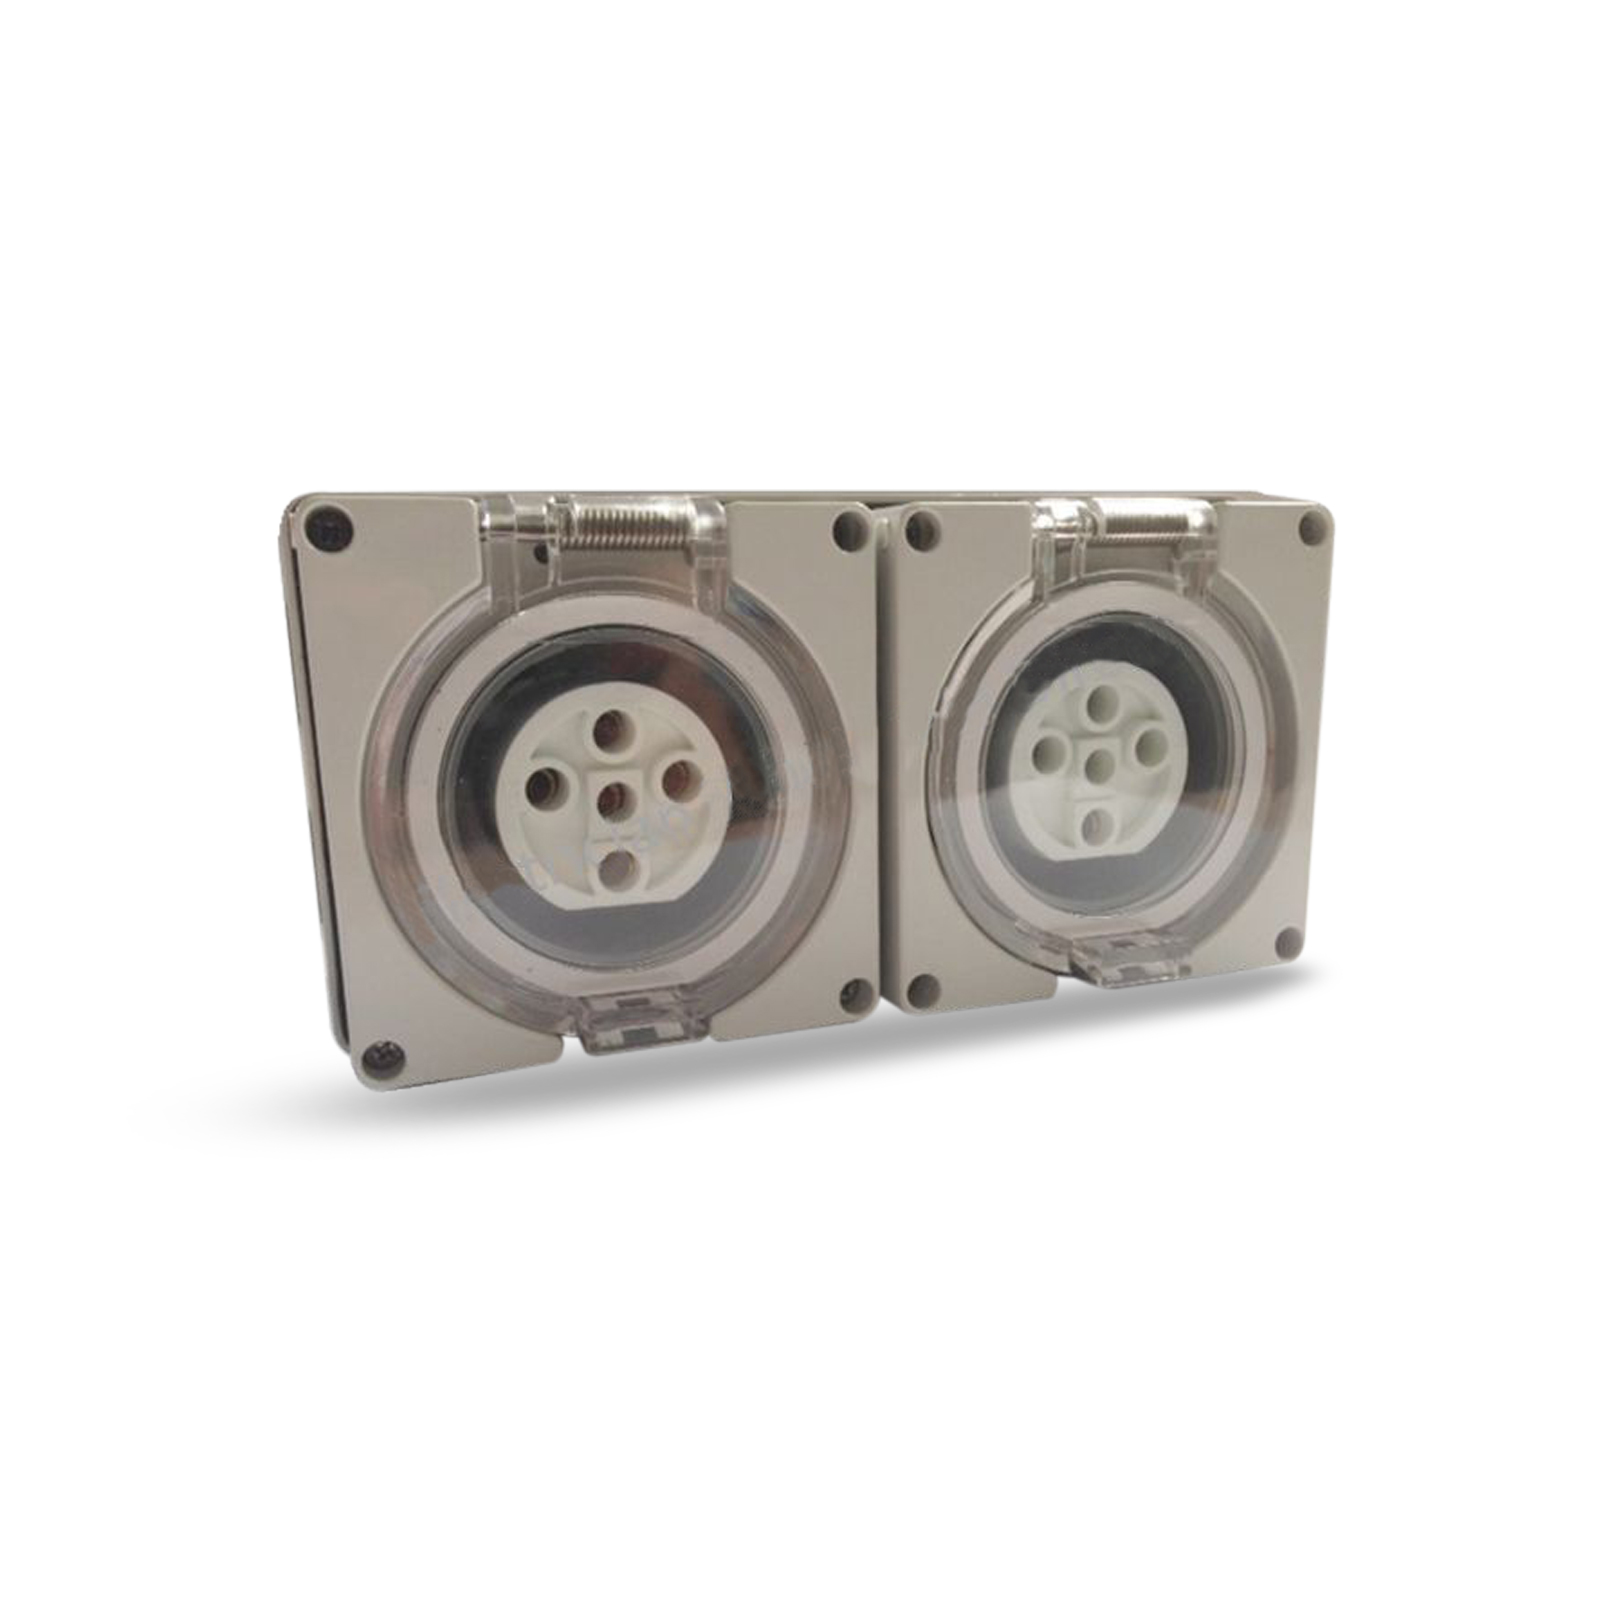 2 X 5 Pin 50 Amp 3 Phase Socket Outlet Ip66 Weatherproof